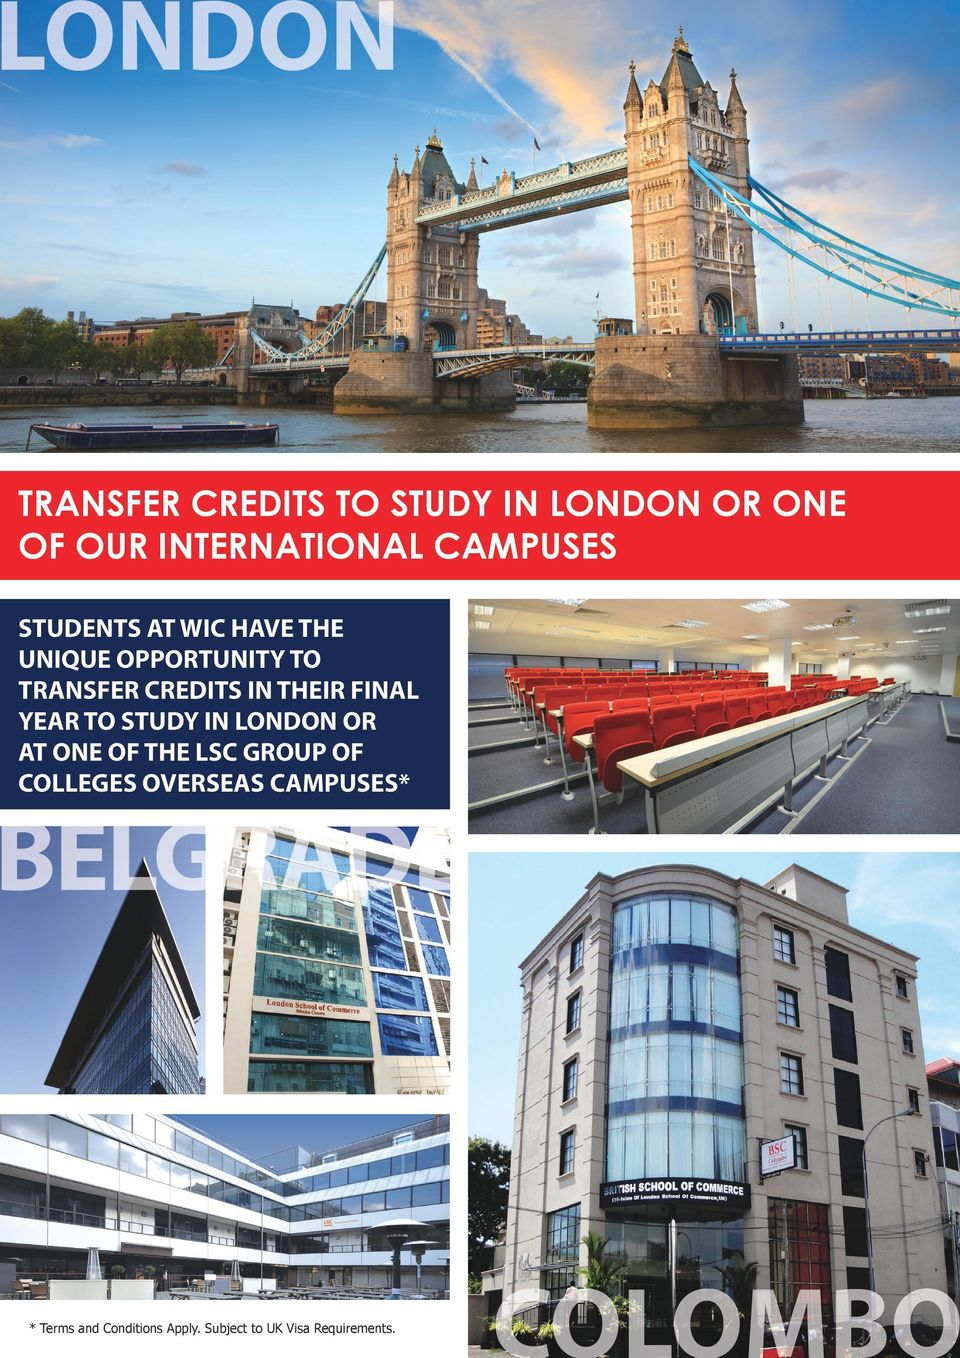 YEAR TO STUDY IN LONDON OR AT ONE OF THE LSC GROUP OF COLLEGES OVERSEAS